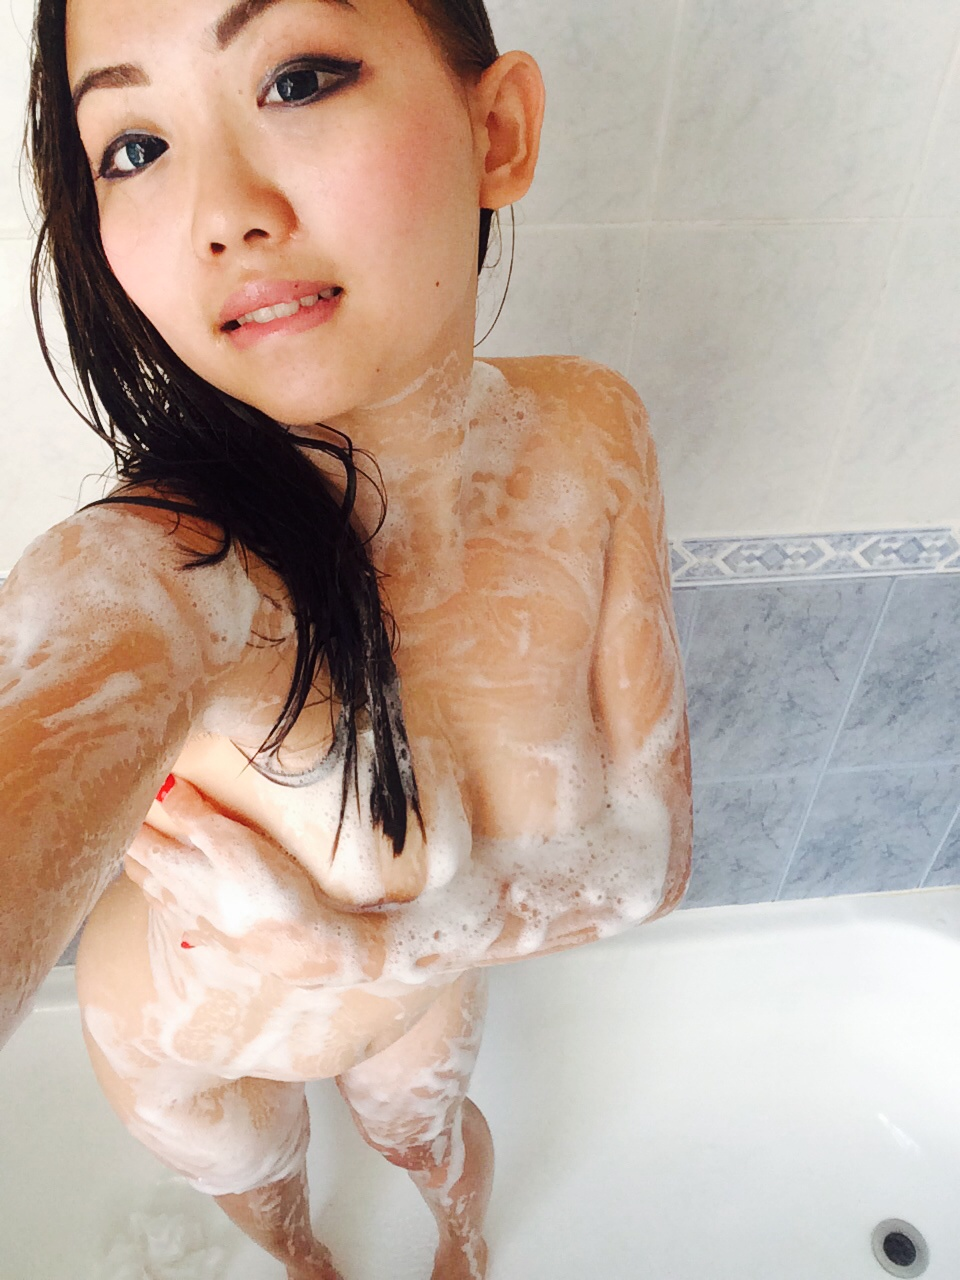 Nude girls in shower self pic